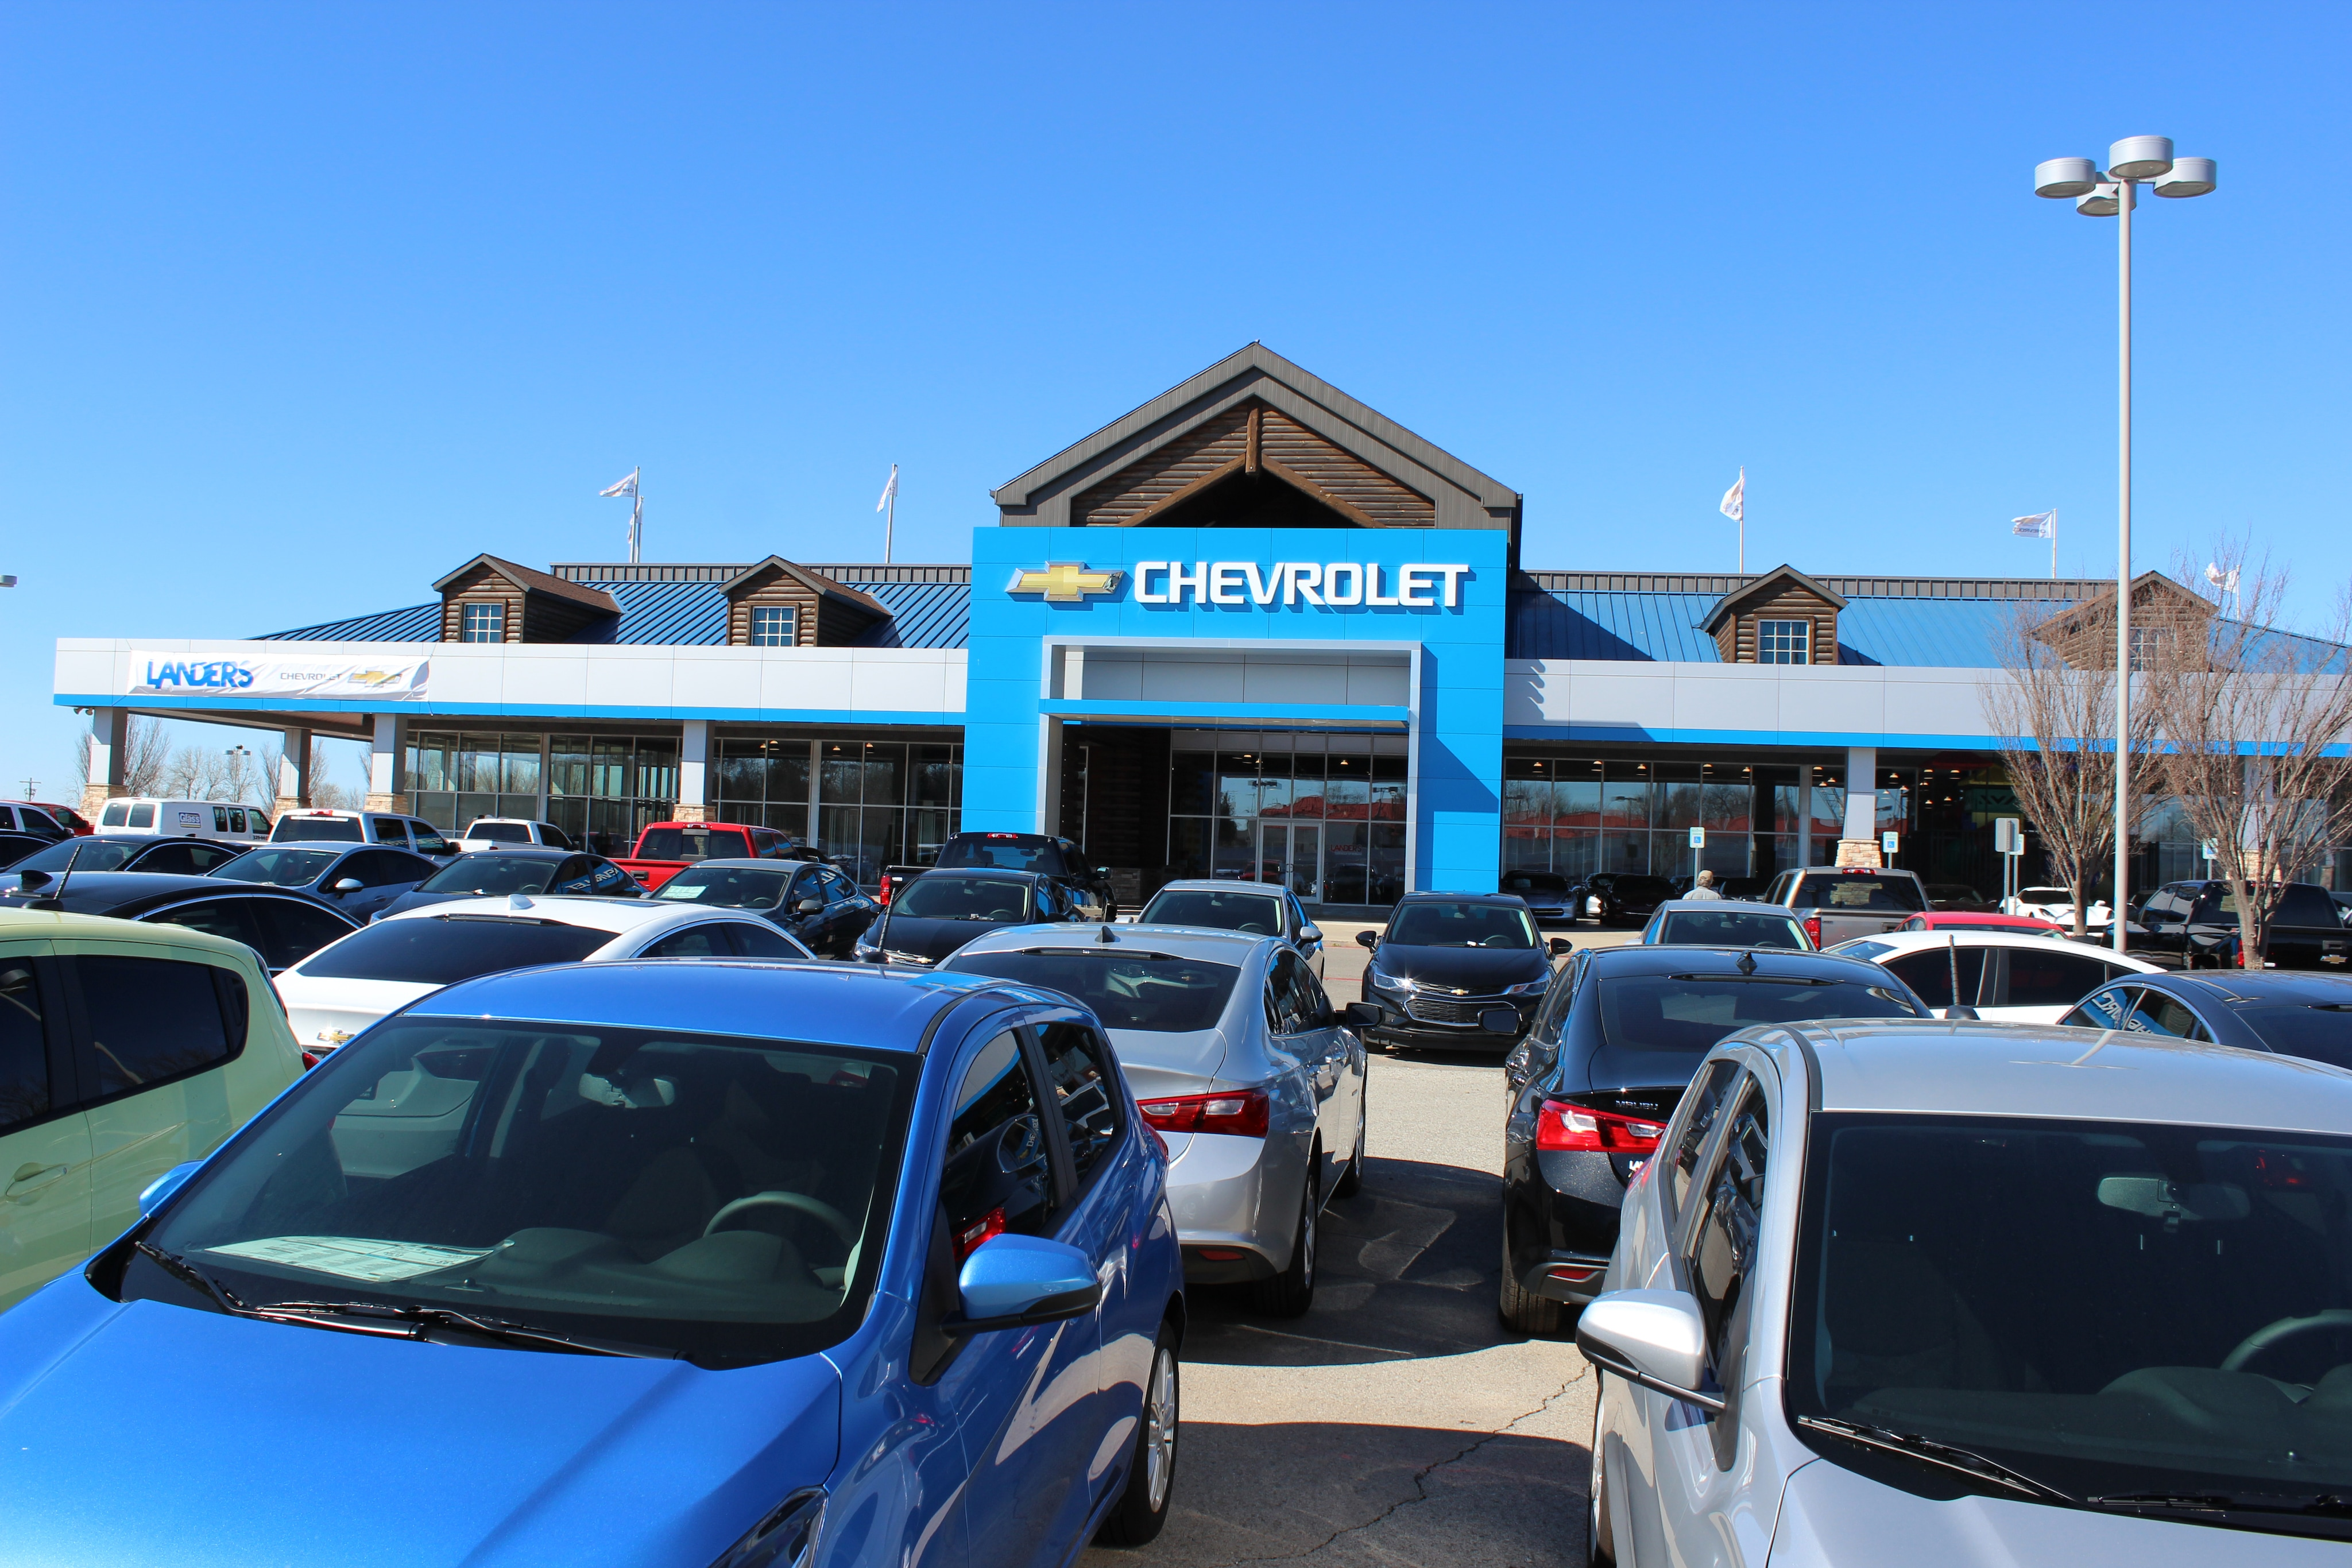 Elegant If You Havenu0027t Heard The News Yet, David Stanley Chevrolet Of Norman  Officially Became Landers Chevrolet Of Norman On February 13, 2017.